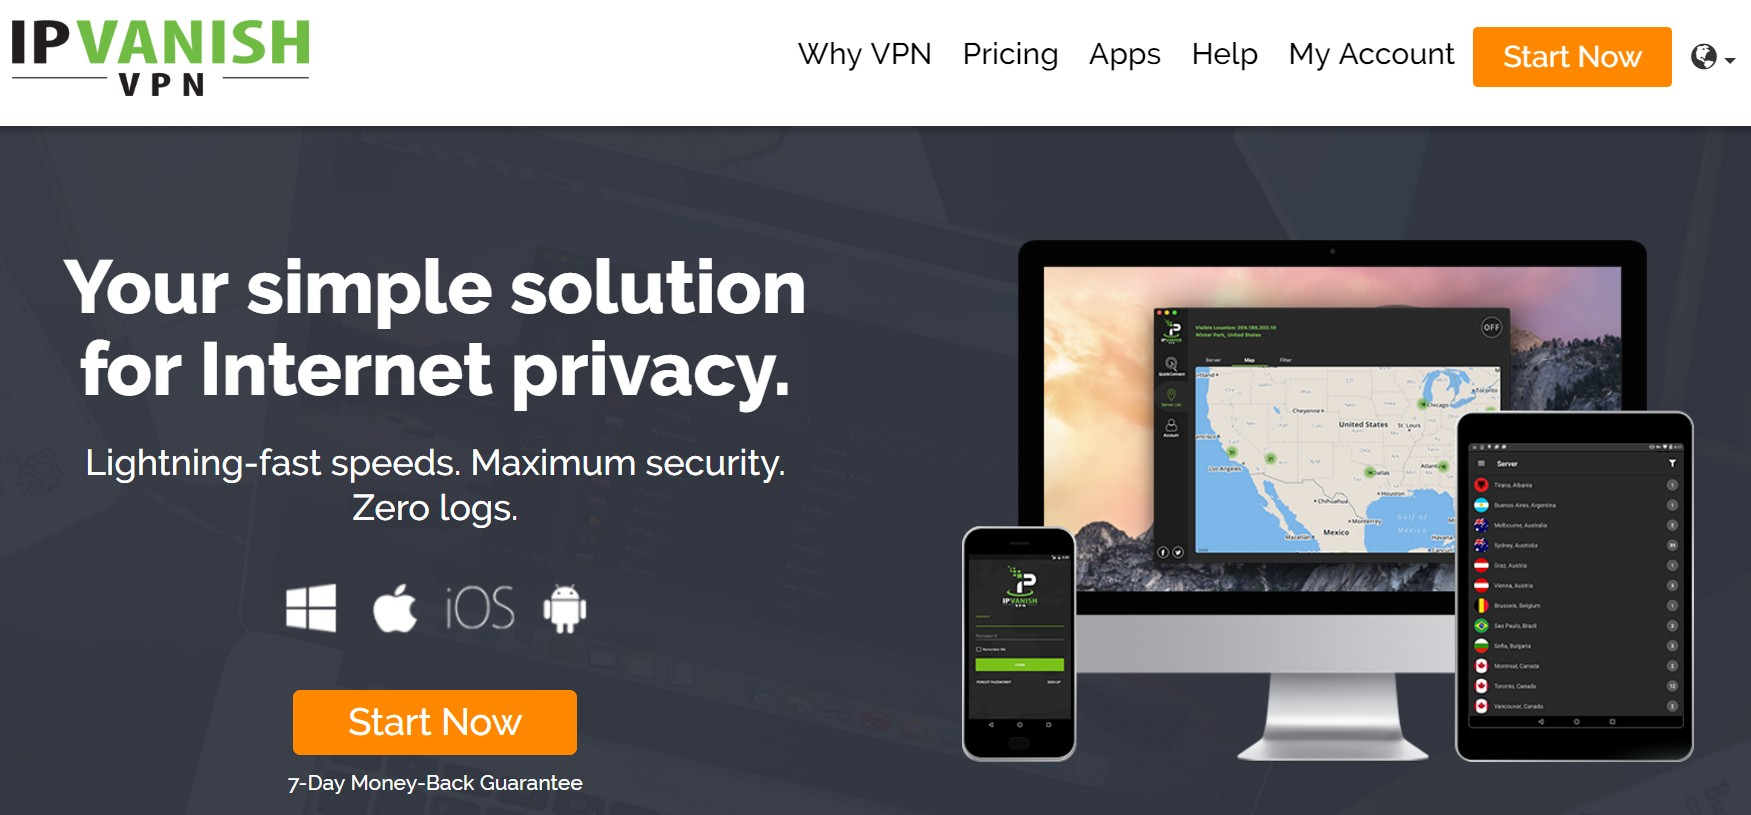 IP Vanish VPN Home Page - Best VPN For Amazon Fire Stick